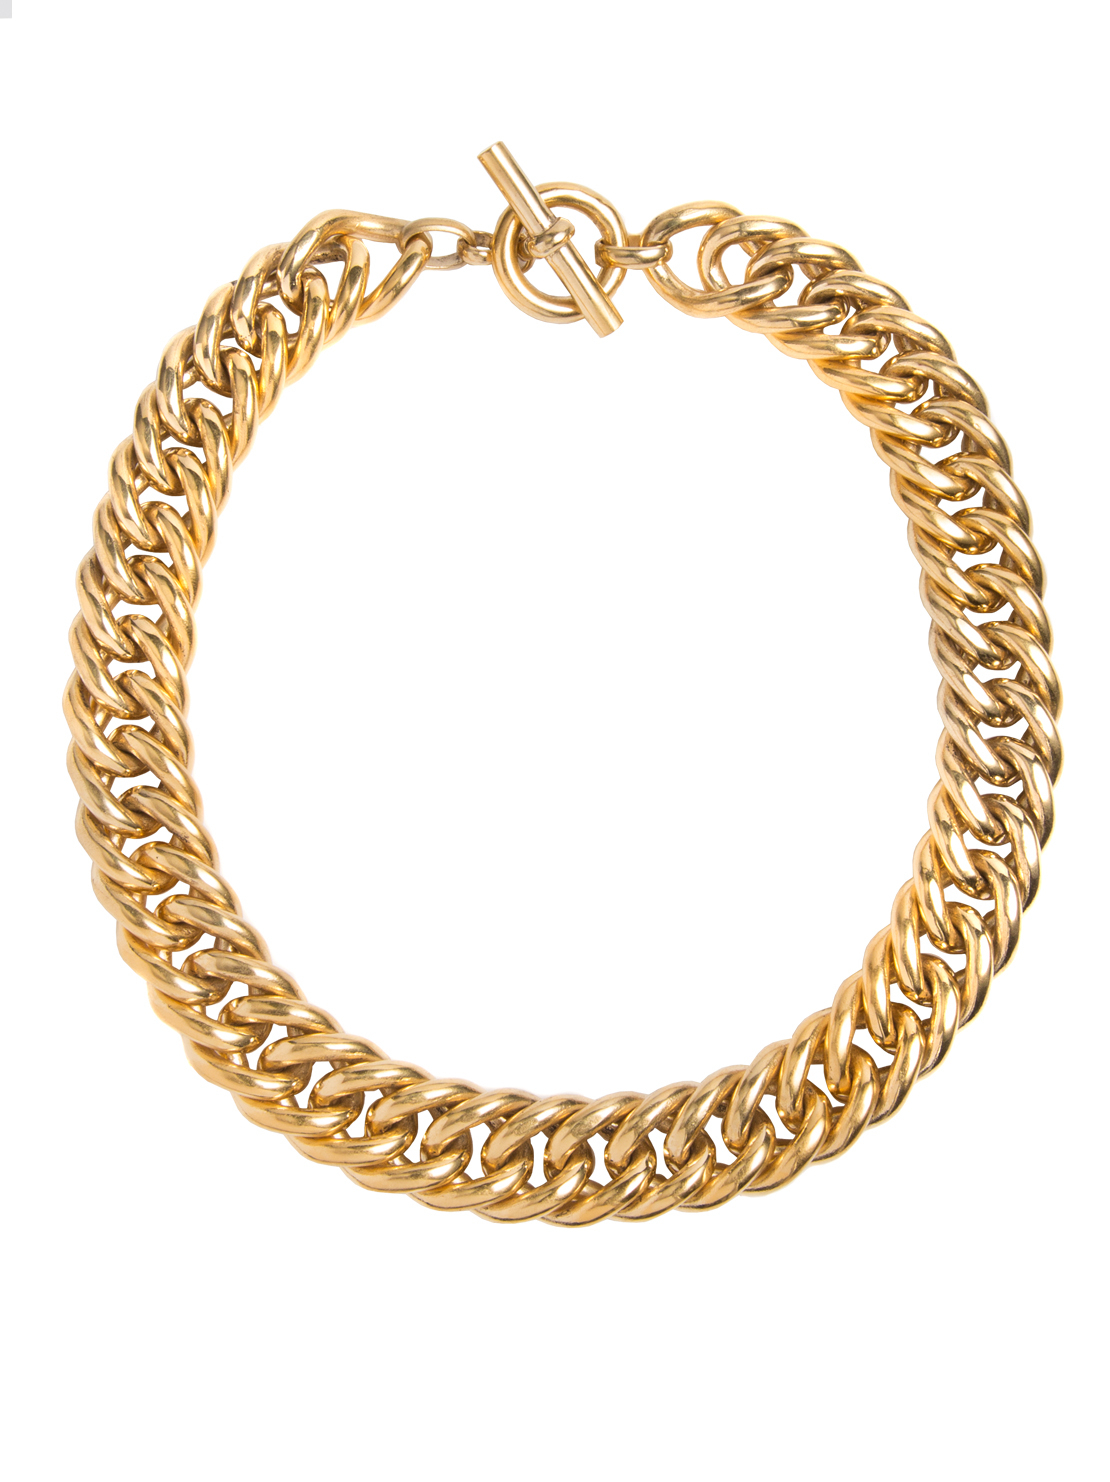 Large Gold Curb Chain Necklace – Tilly Sveaas Jewellery With Most Recent Curb Chain Necklaces (View 8 of 25)